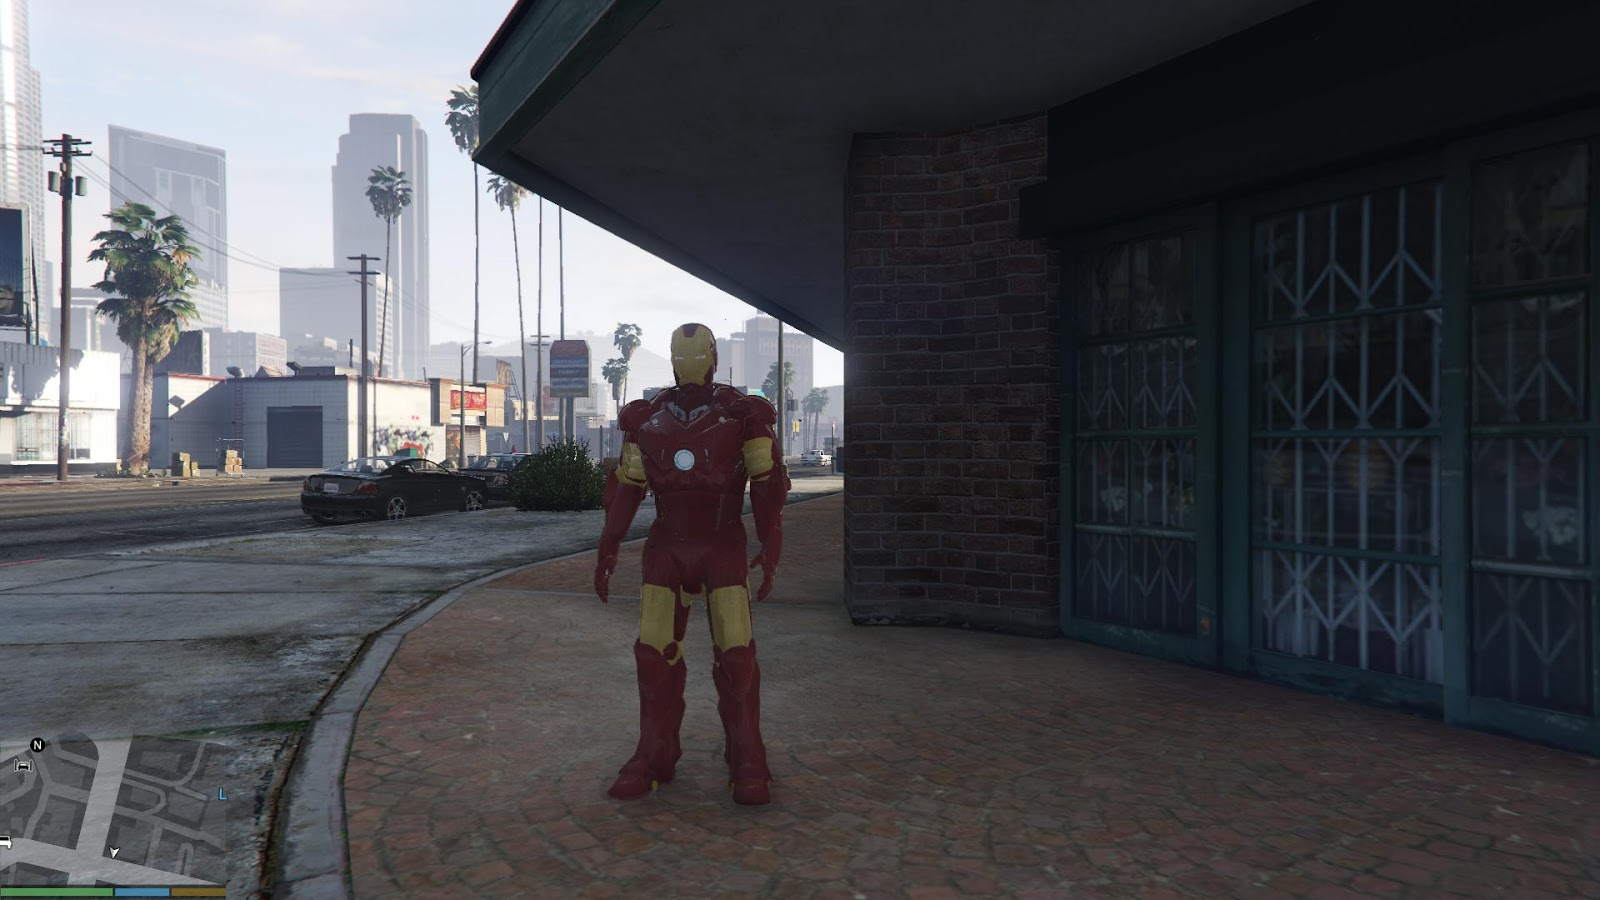 GTA X Scripting: GTA V - Ironman Mark III armor release and